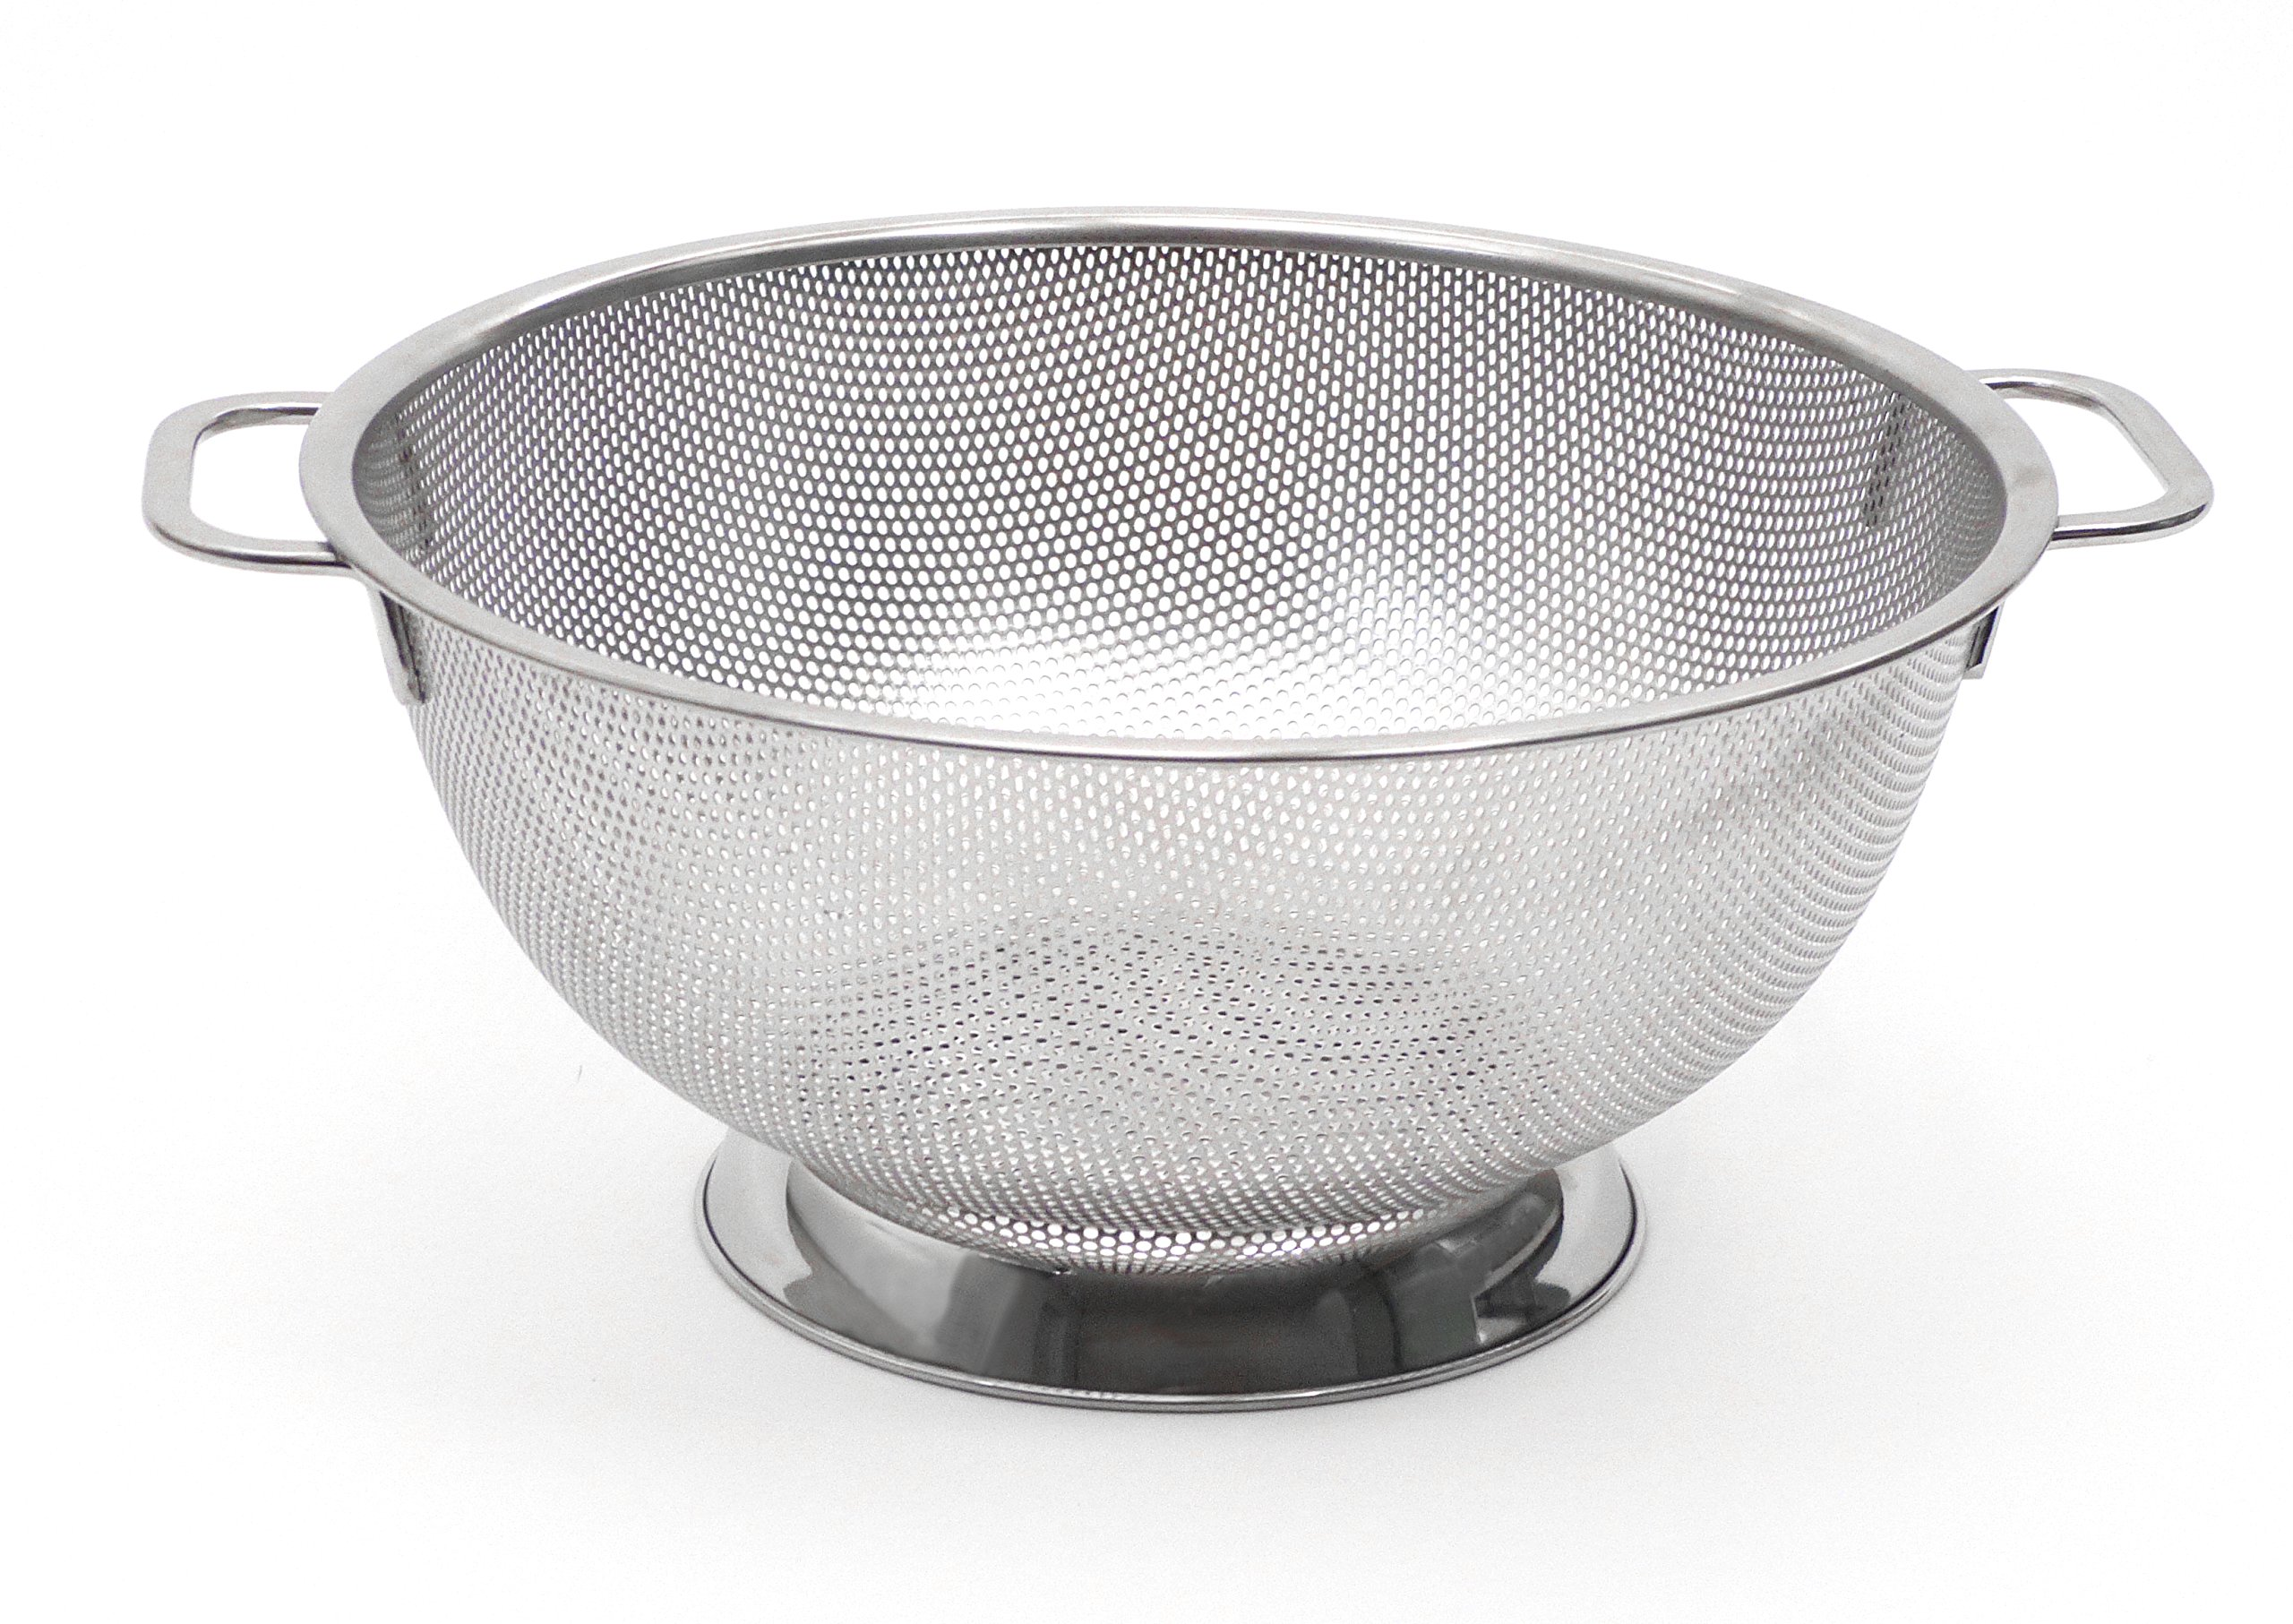 RSVP Endurance Precision Pierced 18/8 Stainless Steel Colander, 5 Quart (PUNCH-5)